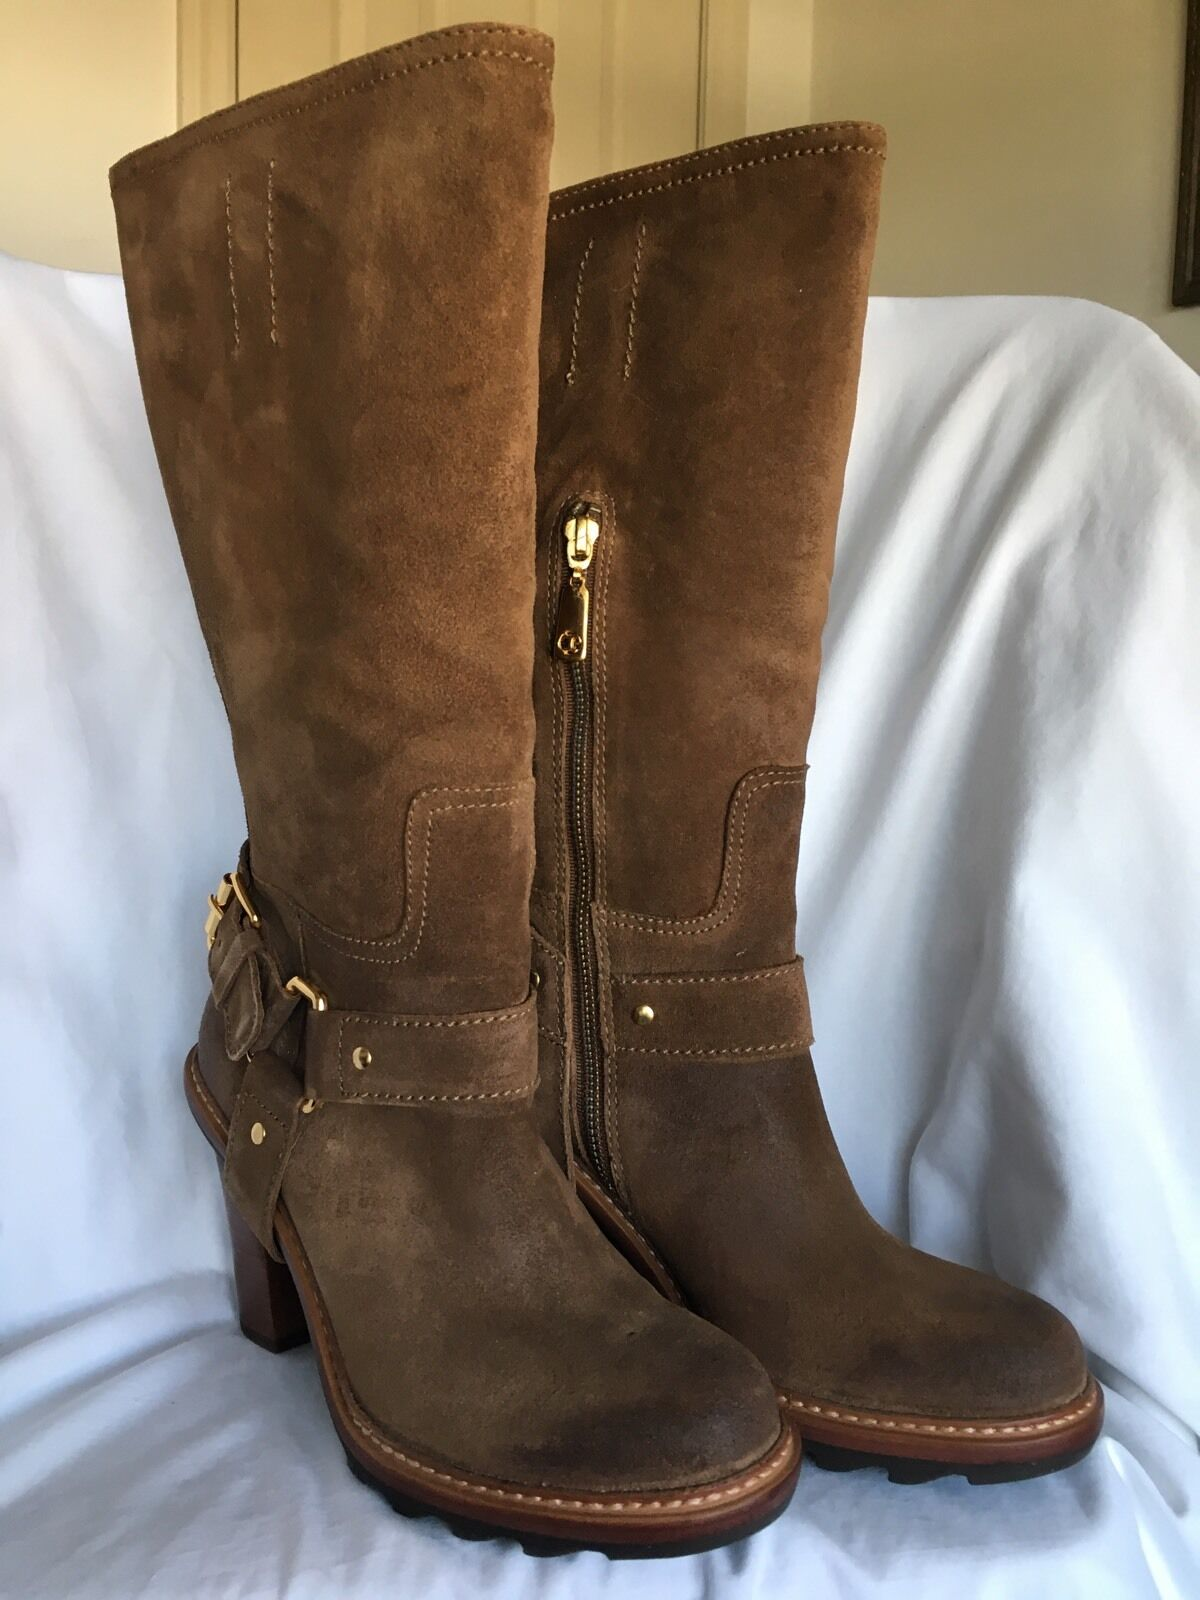 NIB Talbots Brown Leather 349 SALLIE Equestrian Boots Buckle Trim 7.5 M